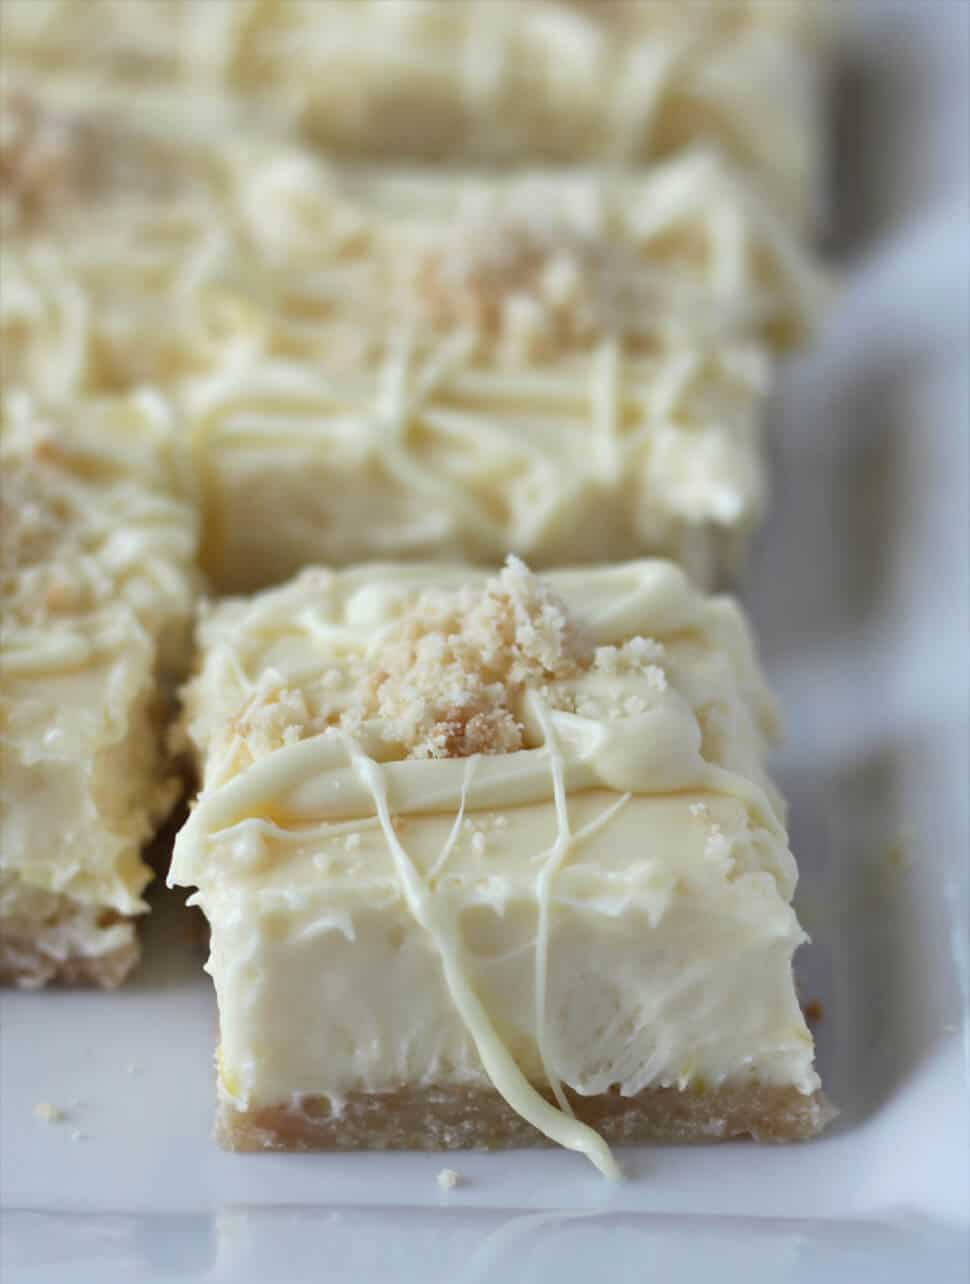 Side view of white chocolate cheesecake bars on a serving platter.